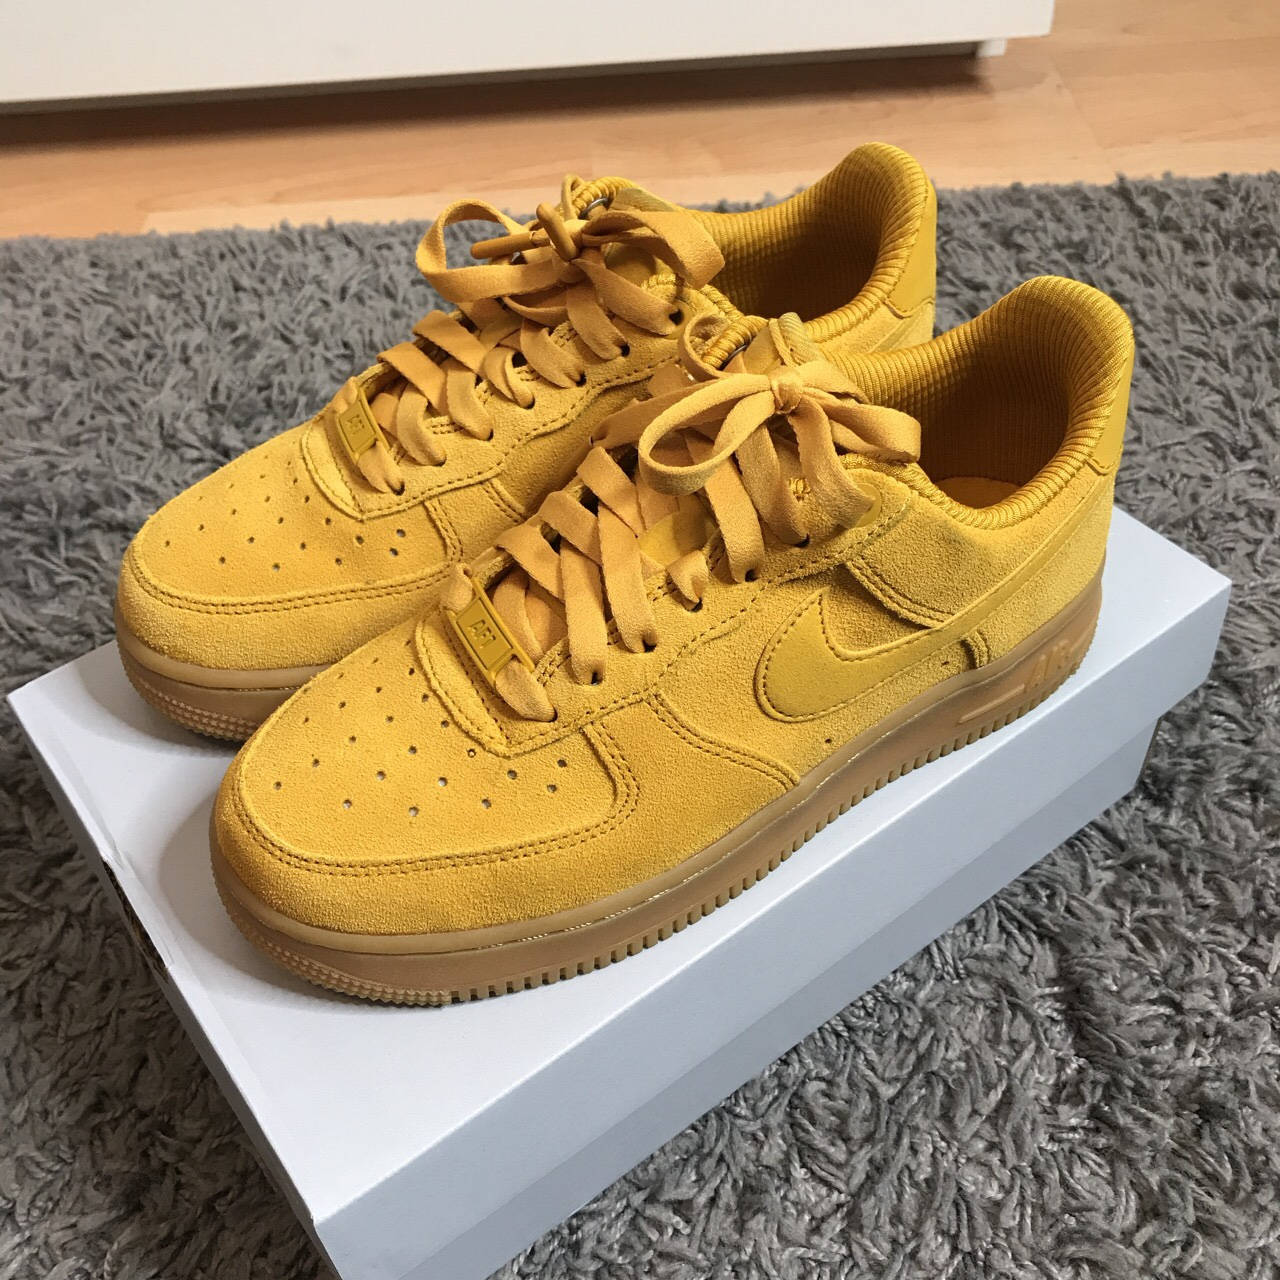 YELLOW SUEDE NIKE AIR FORCE 1 LOW